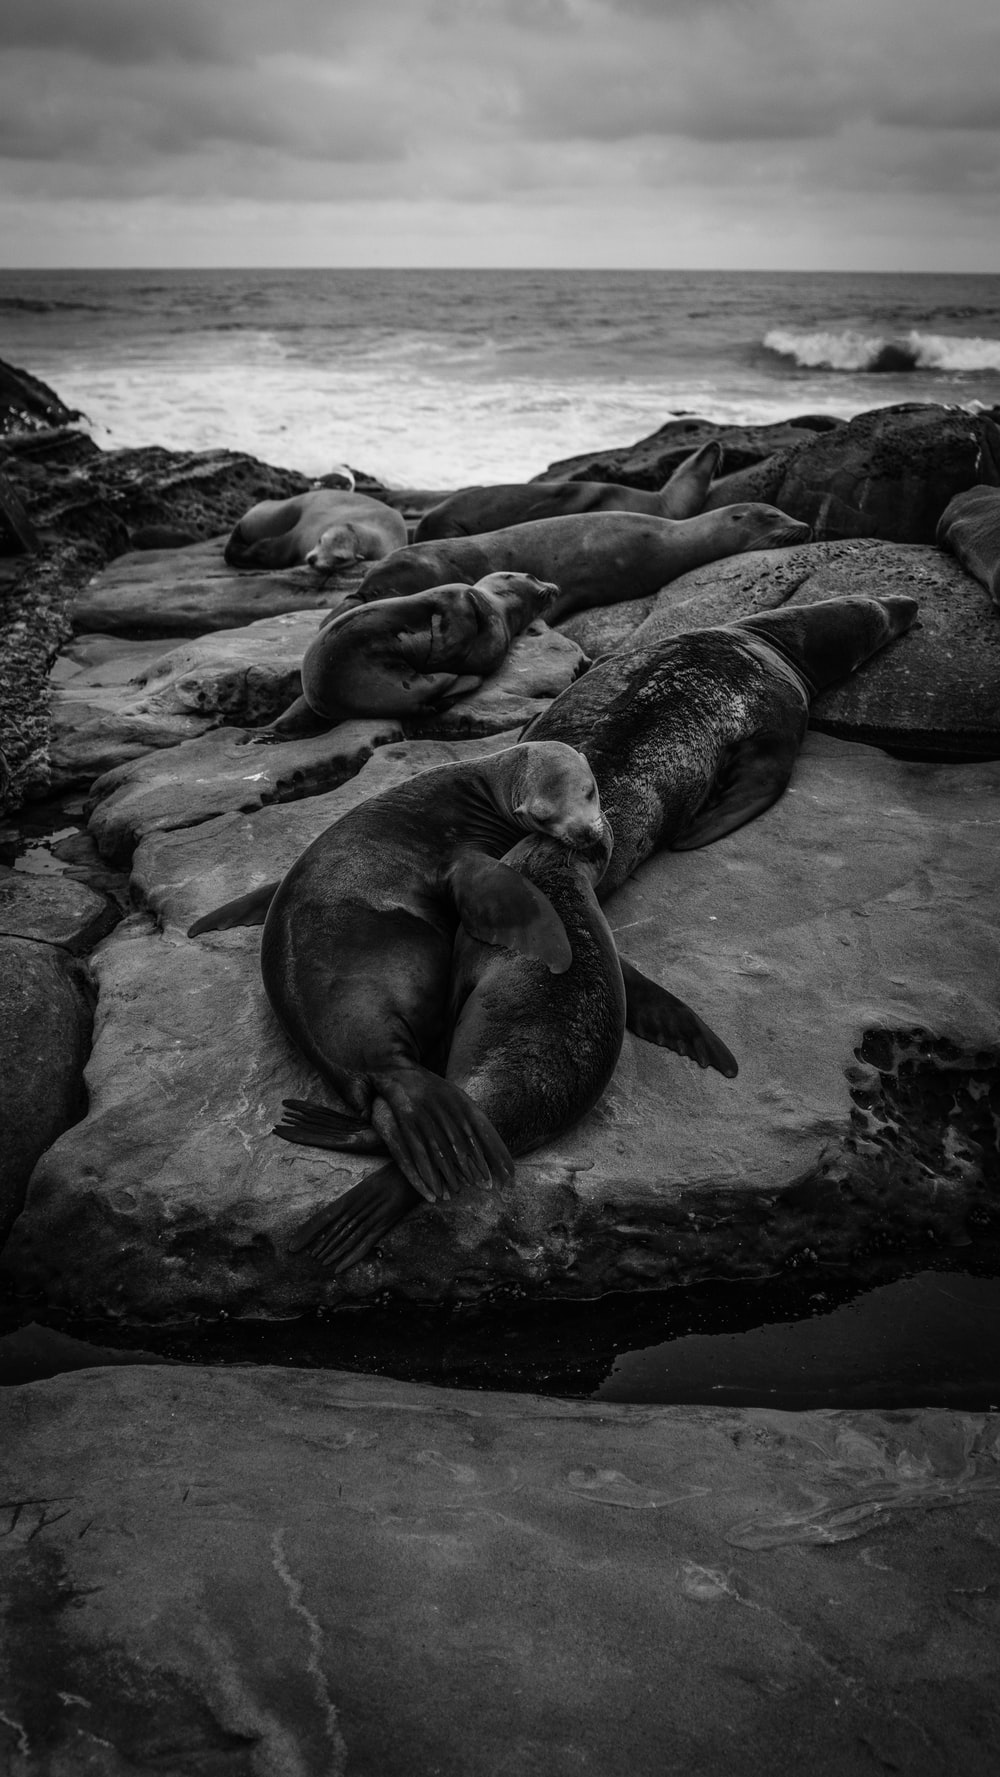 grayscale photo of seal on rocks